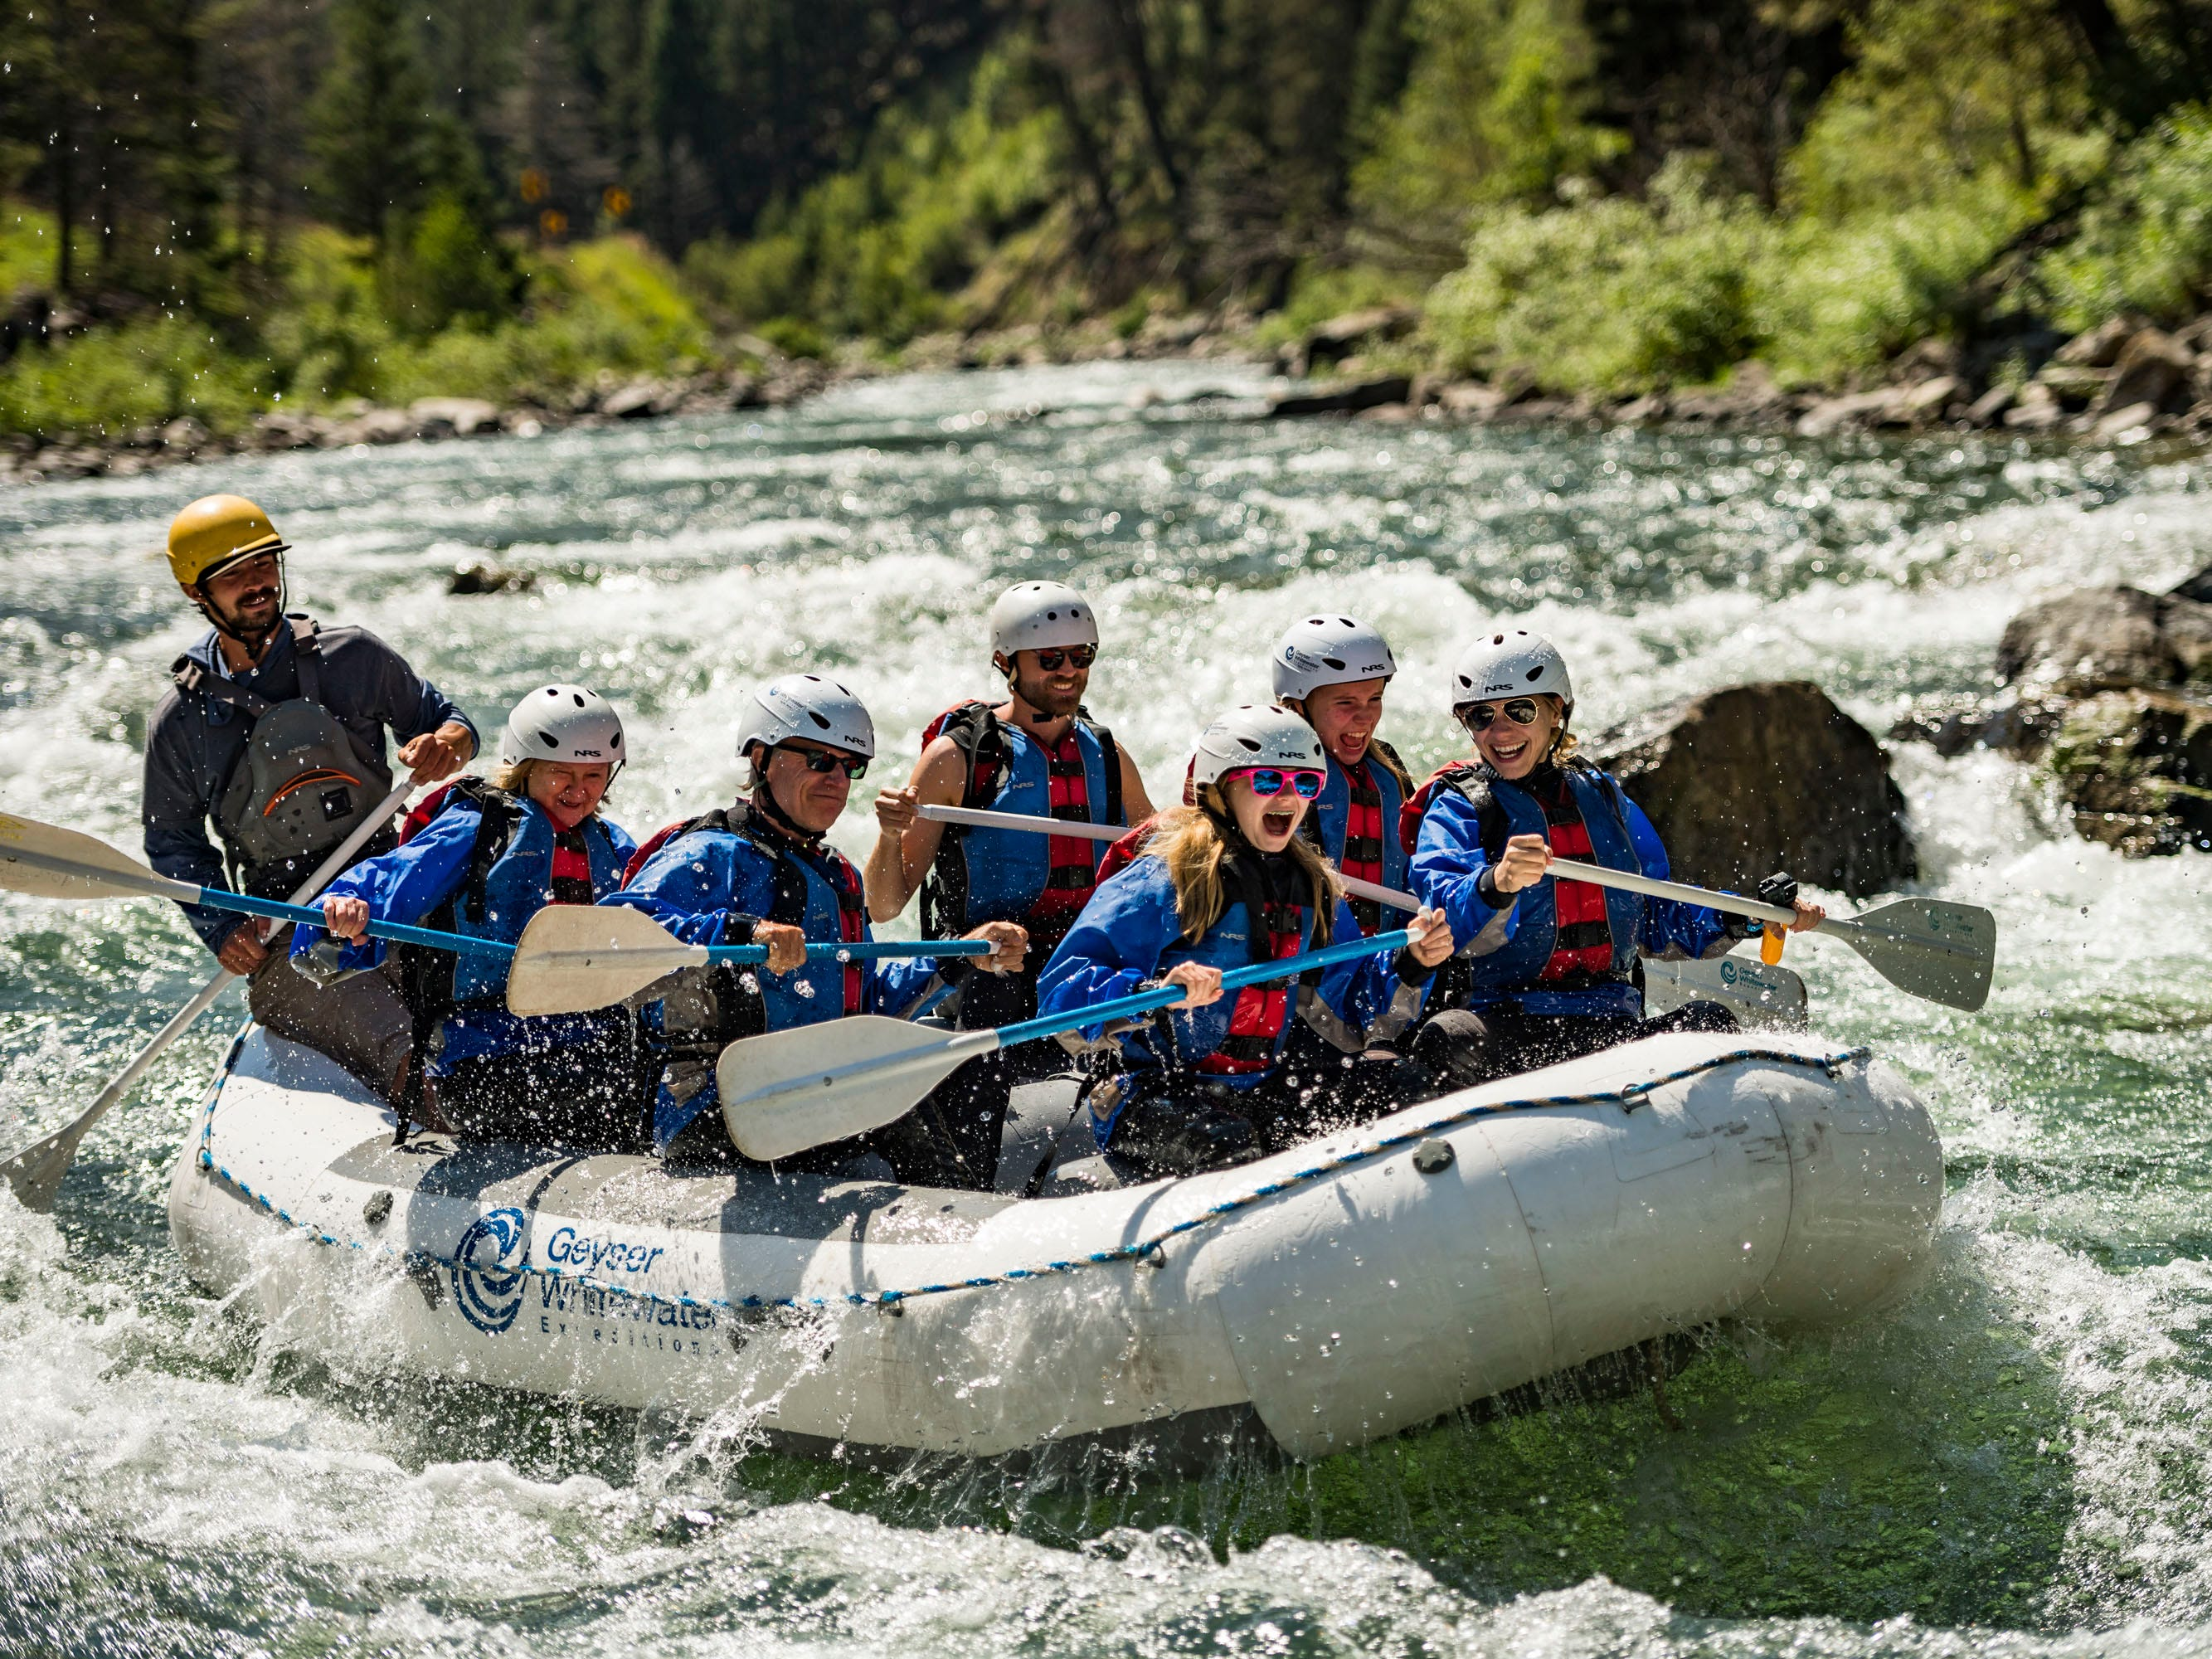 Navigating the rapids of the Gallatin during a whitewater rafting expedition.